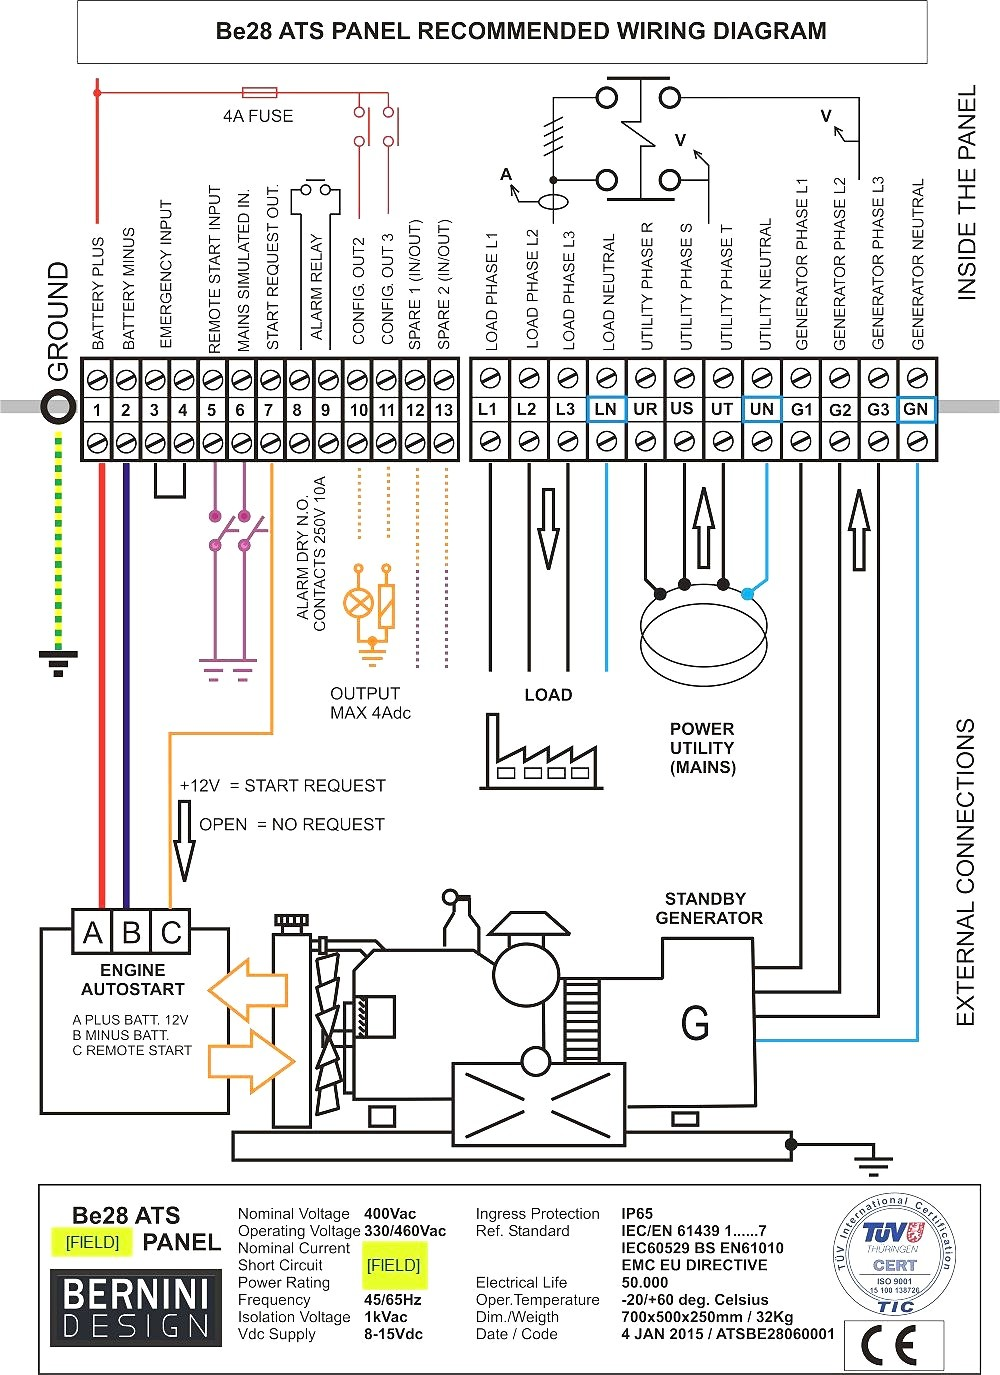 generac transfer switch wiring diagram unique wiring diagram image rh mainetreasurechest com 200 Amp Generac Transfer Switch Wiring Generac Automatic Transfer Switches Wiring